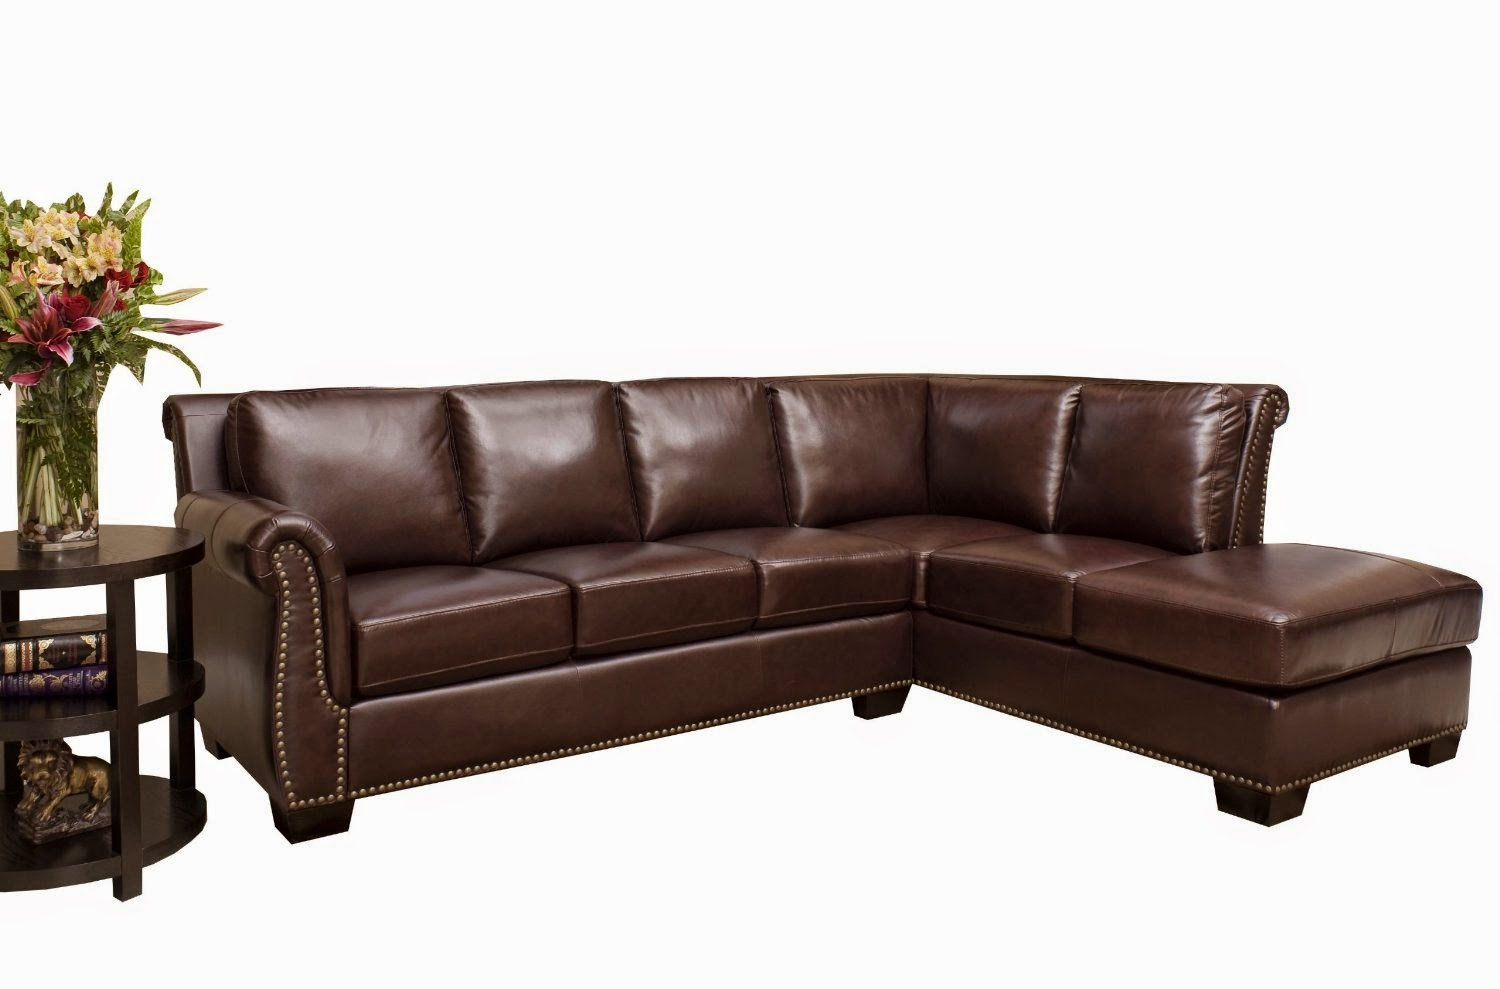 Sectional sofa leather sectional sofa for Leather furniture